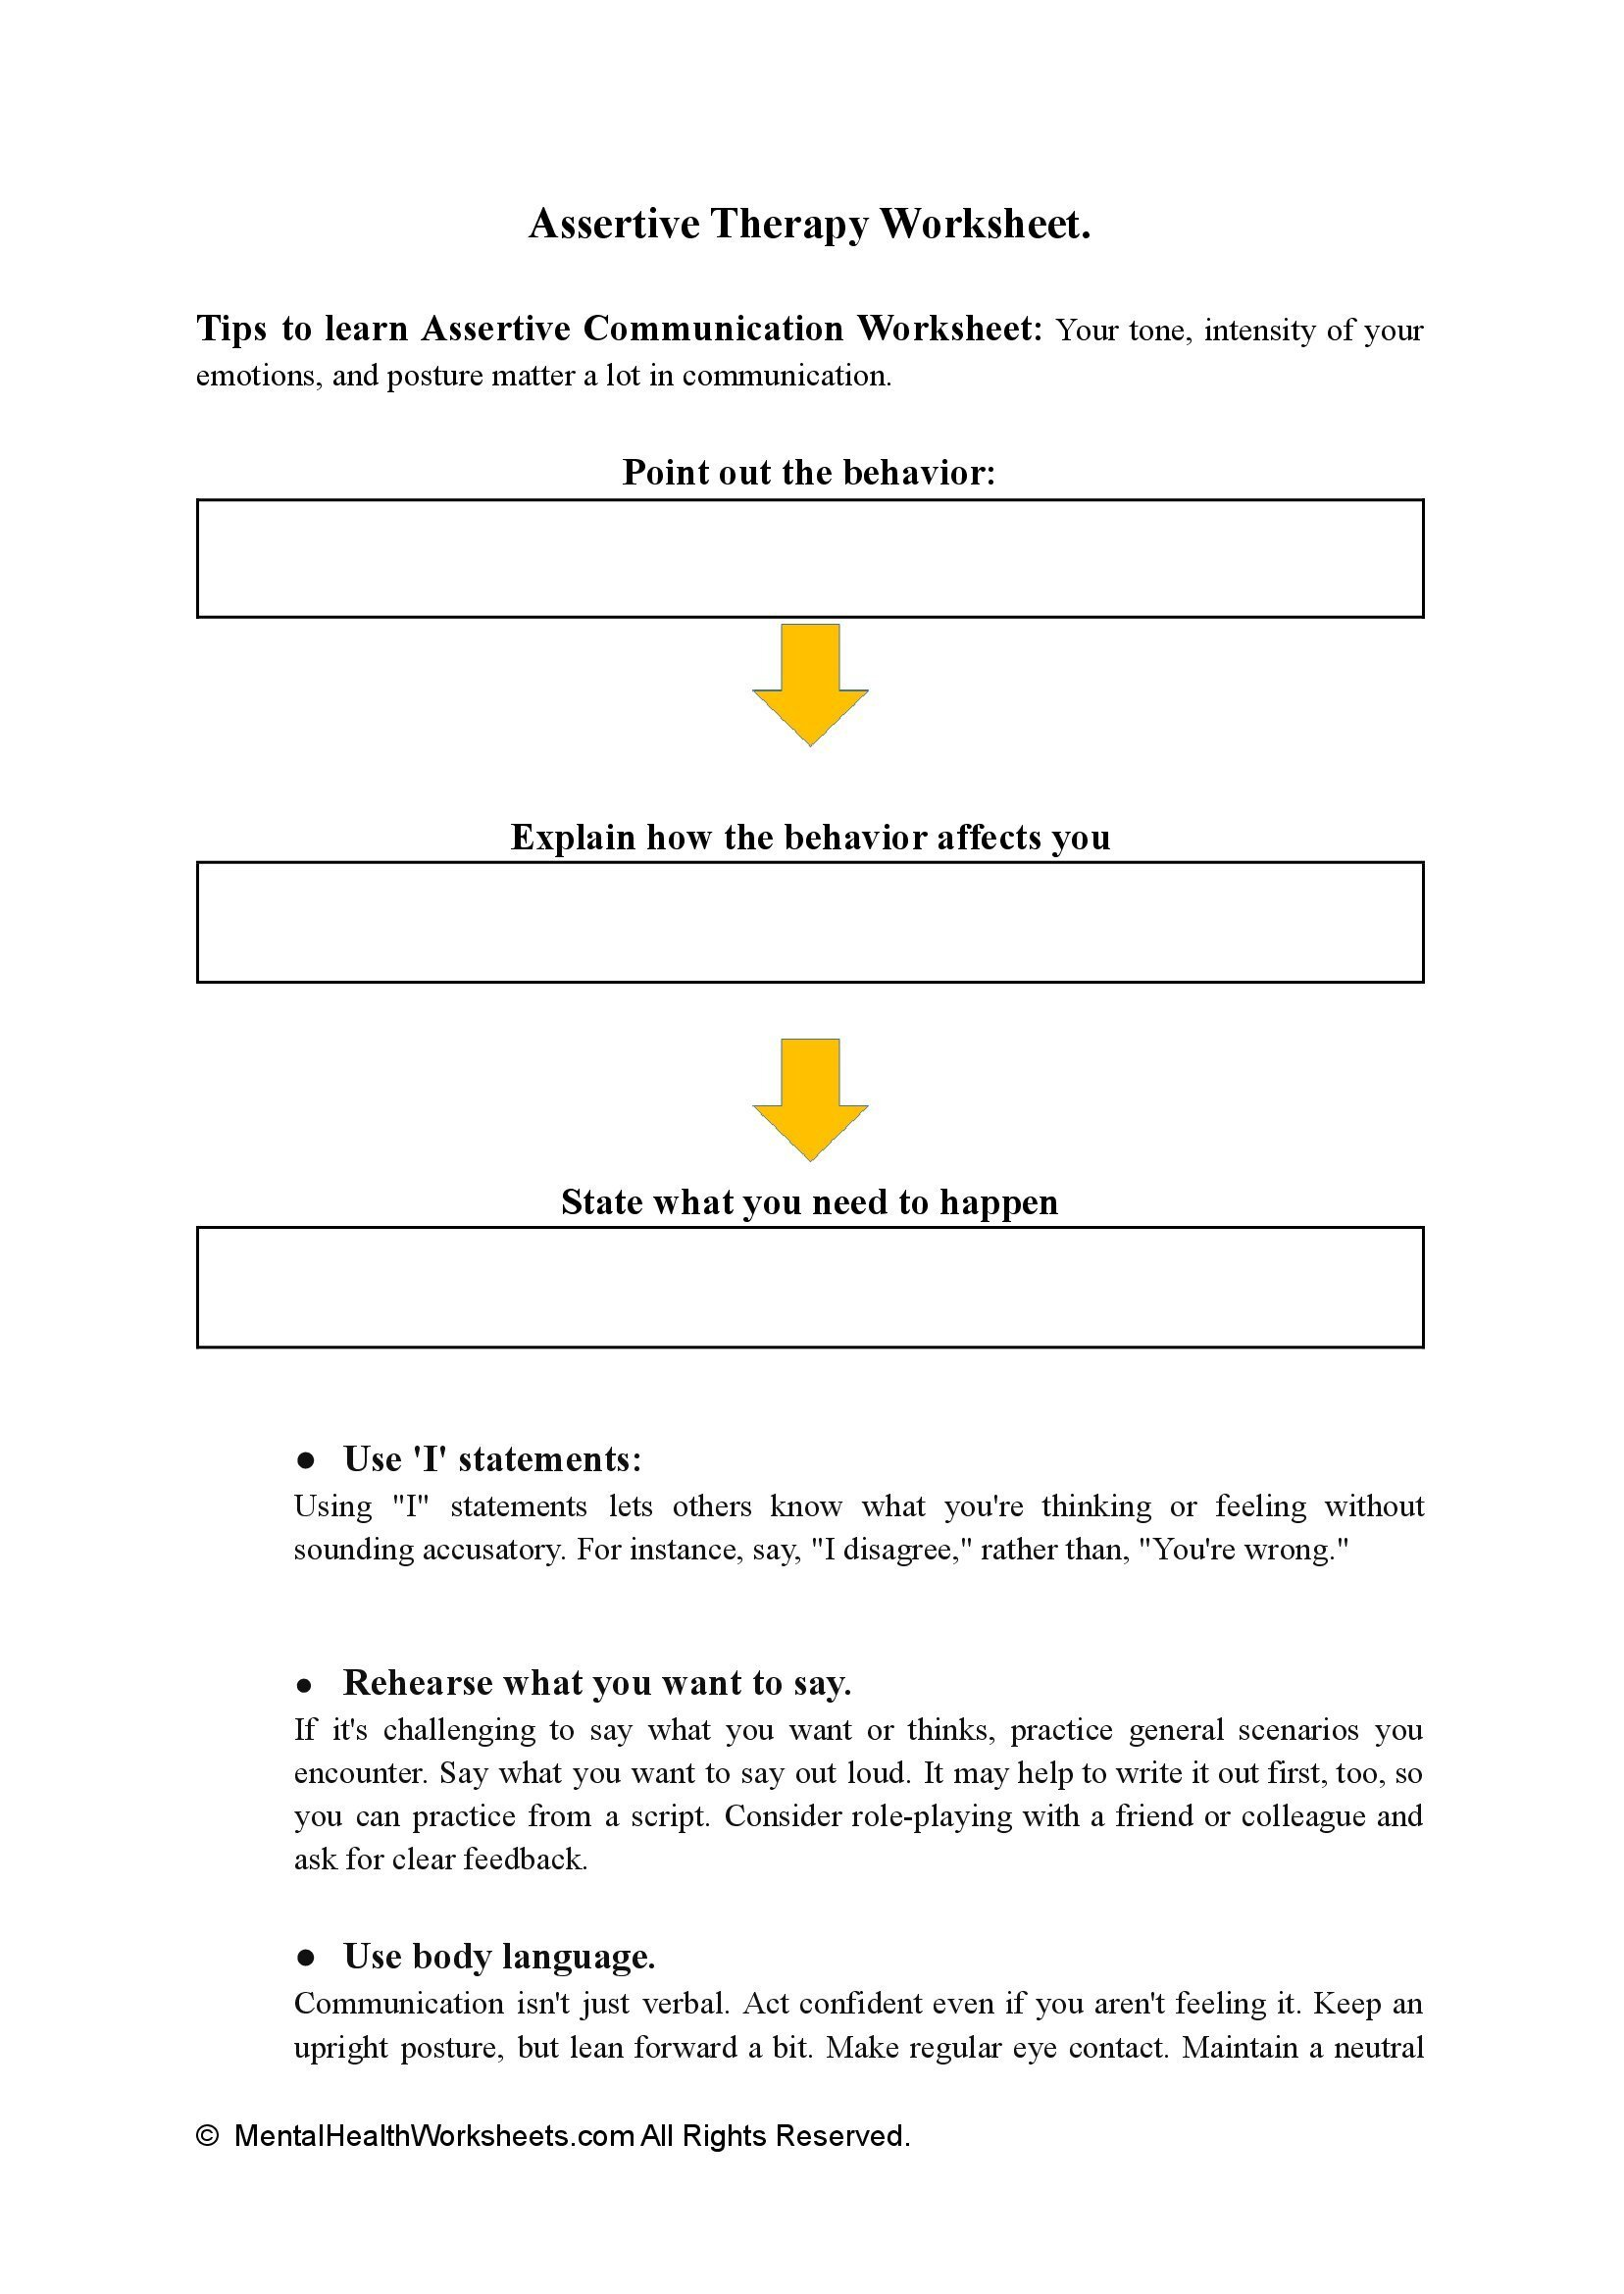 Assertive Therapy Worksheets